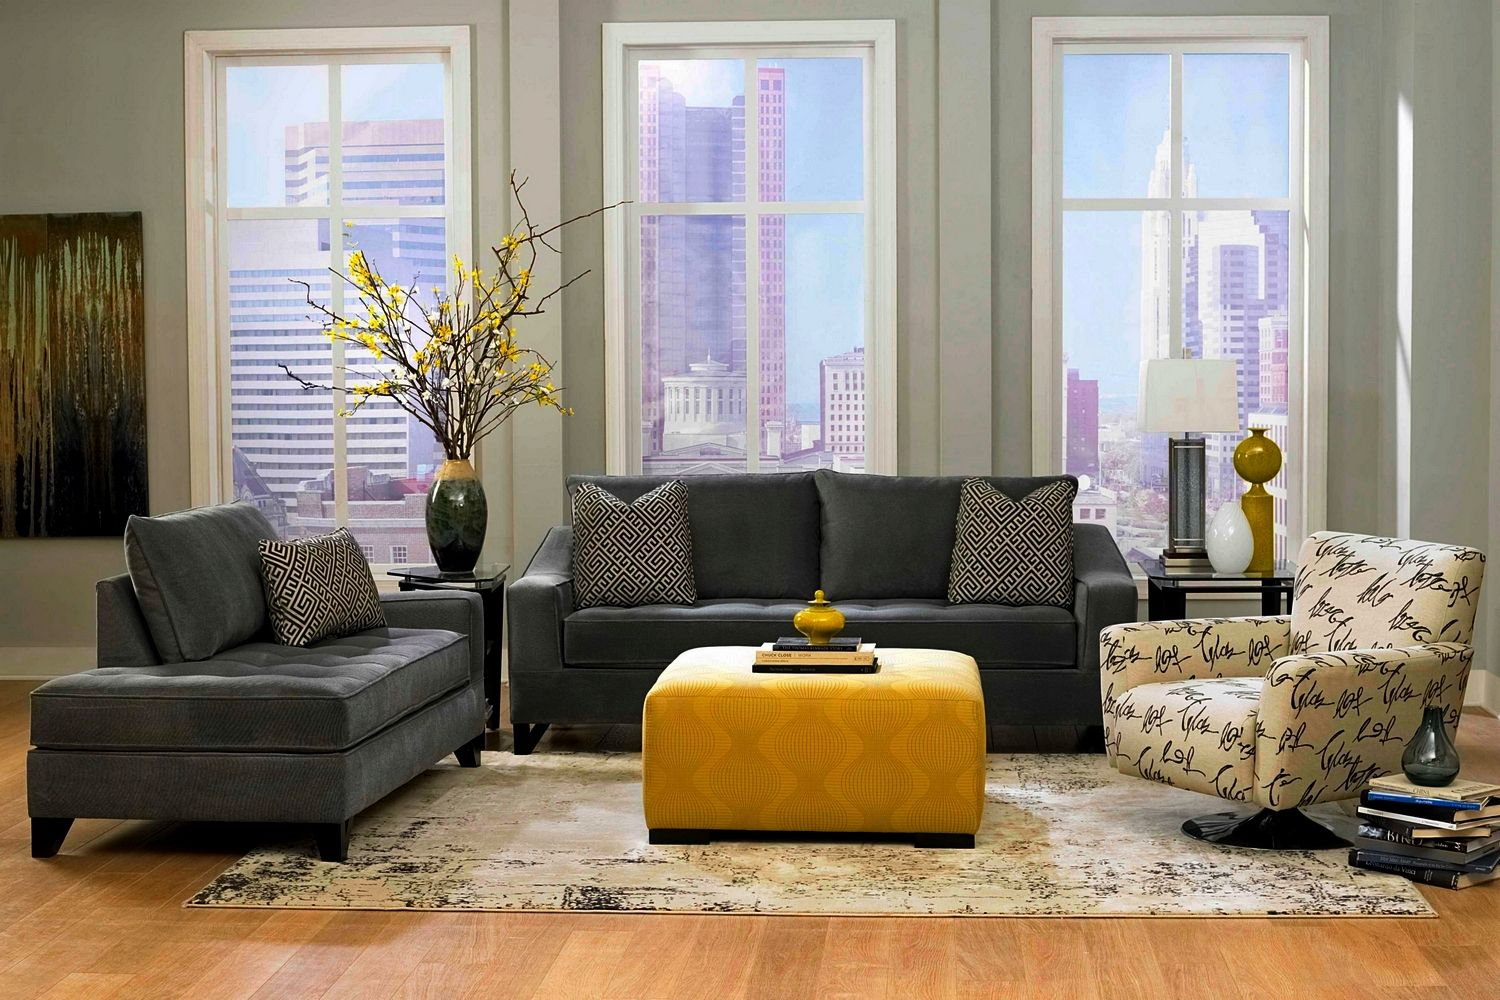 Gray Leather Sofa In Living Room With Yellow Ottoman Living Room Grey Living Room Decor Gray Grey Furniture Living Room